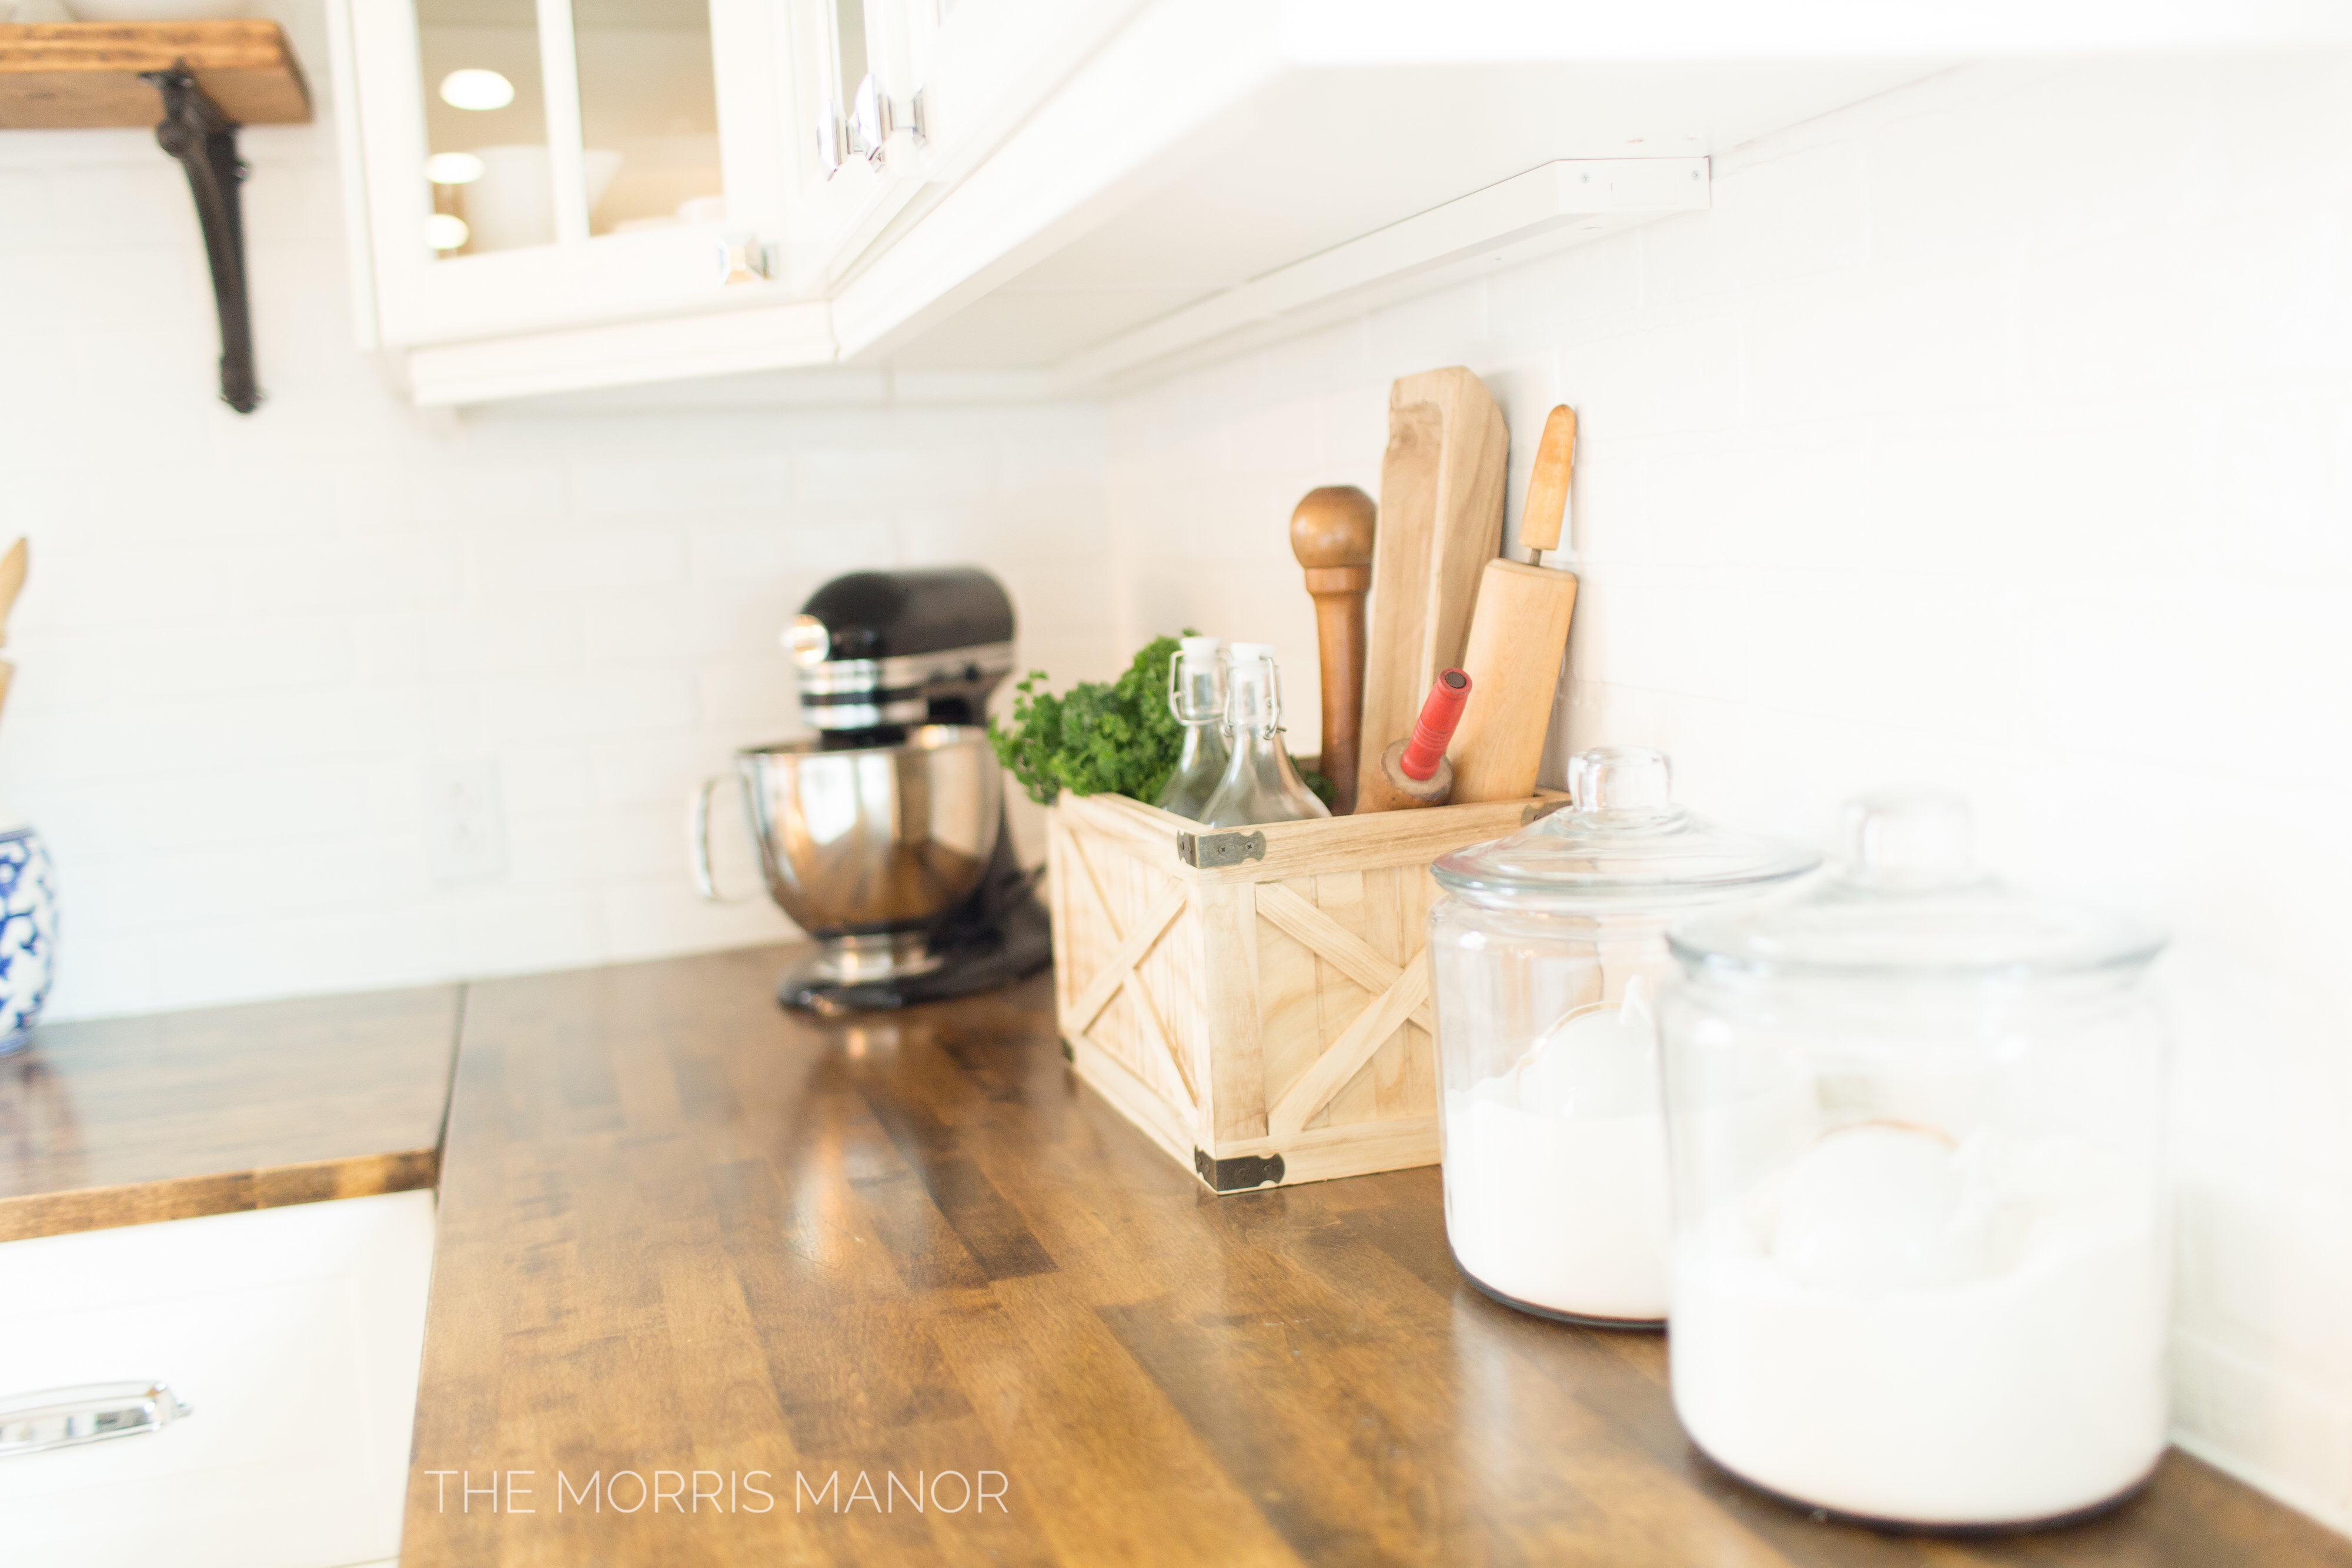 The Morris Manor Home Tour - Vintage White Farmhouse Kitchen, Warm Wood Counter Tops, Open Shelves, Cutting Boards and Crocks